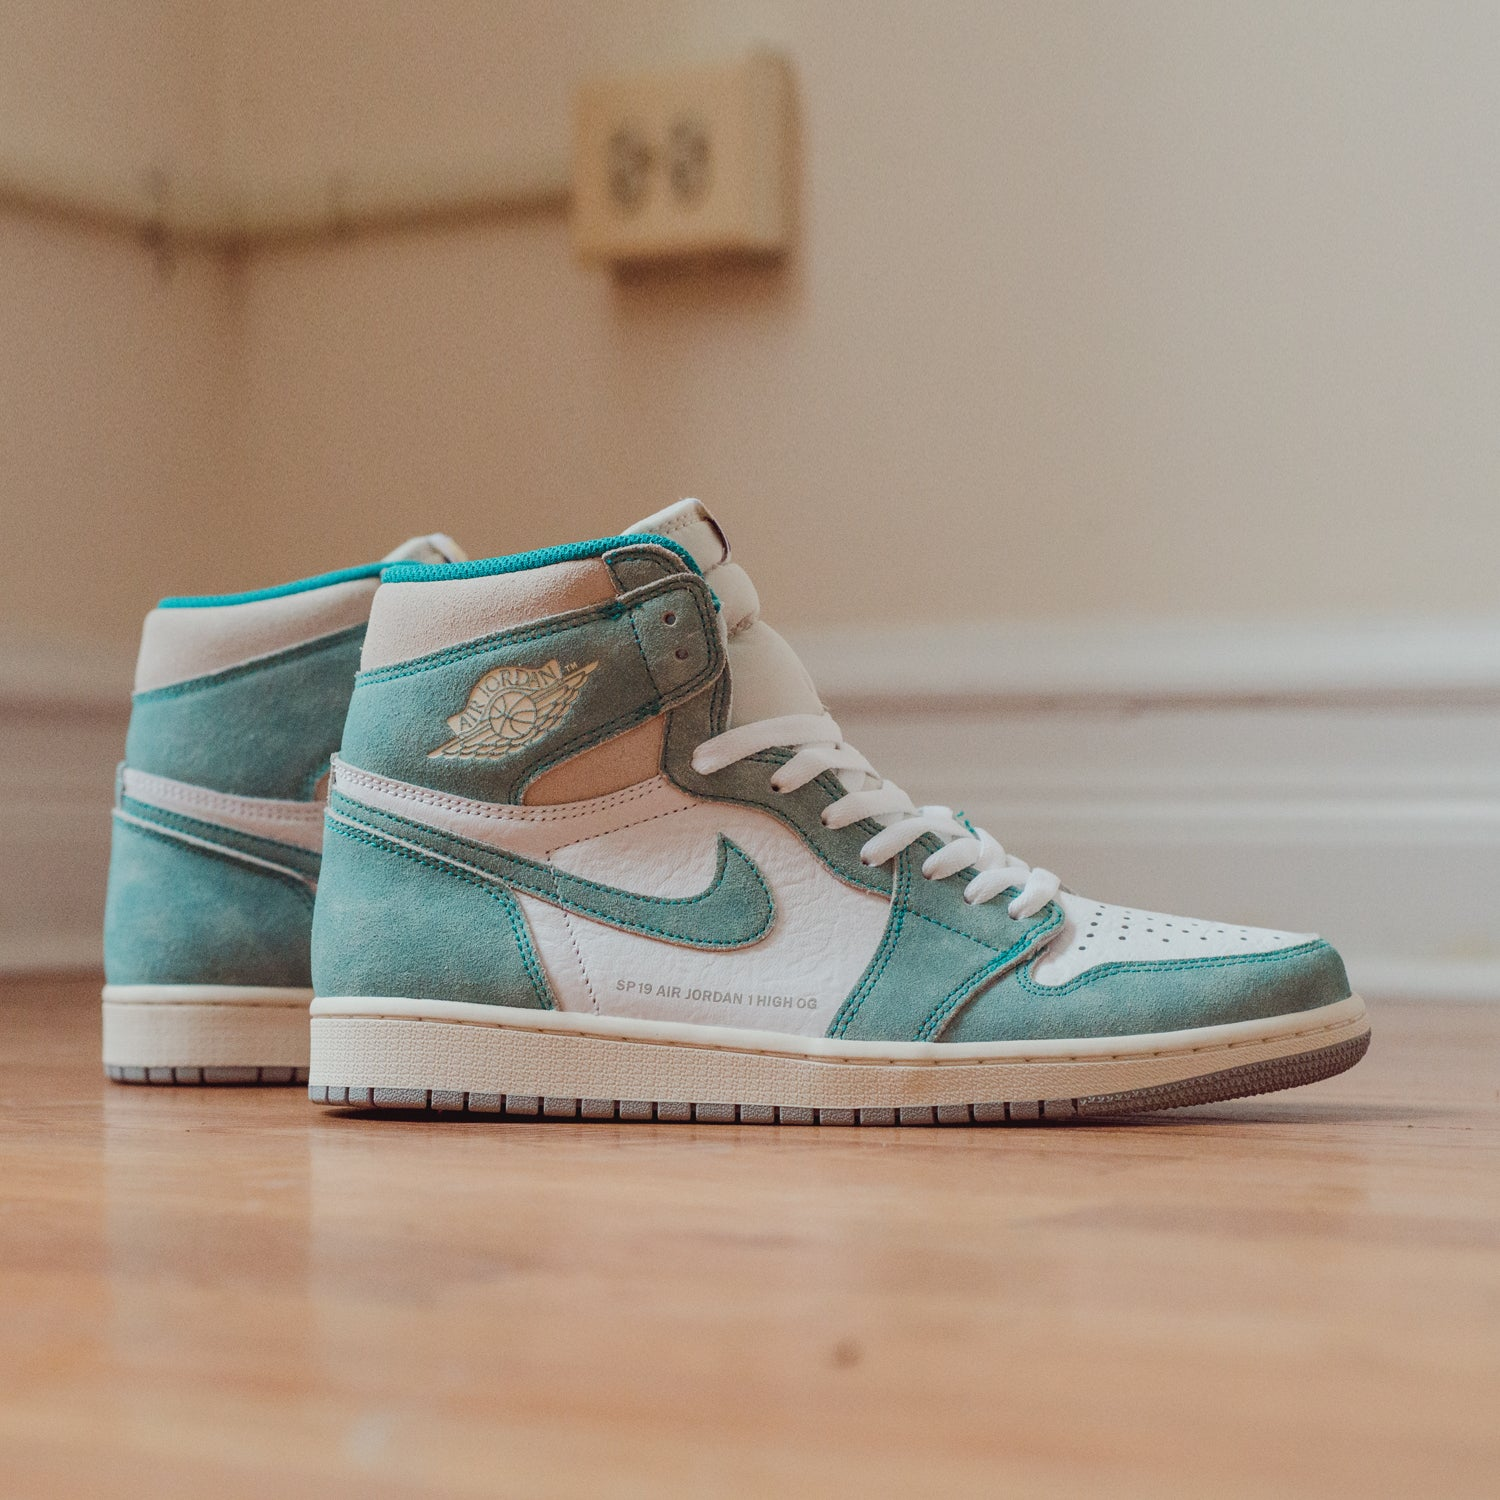 84148c78bfca Men s Air Jordan 1 Retro High OG Turbo Green 555088-311